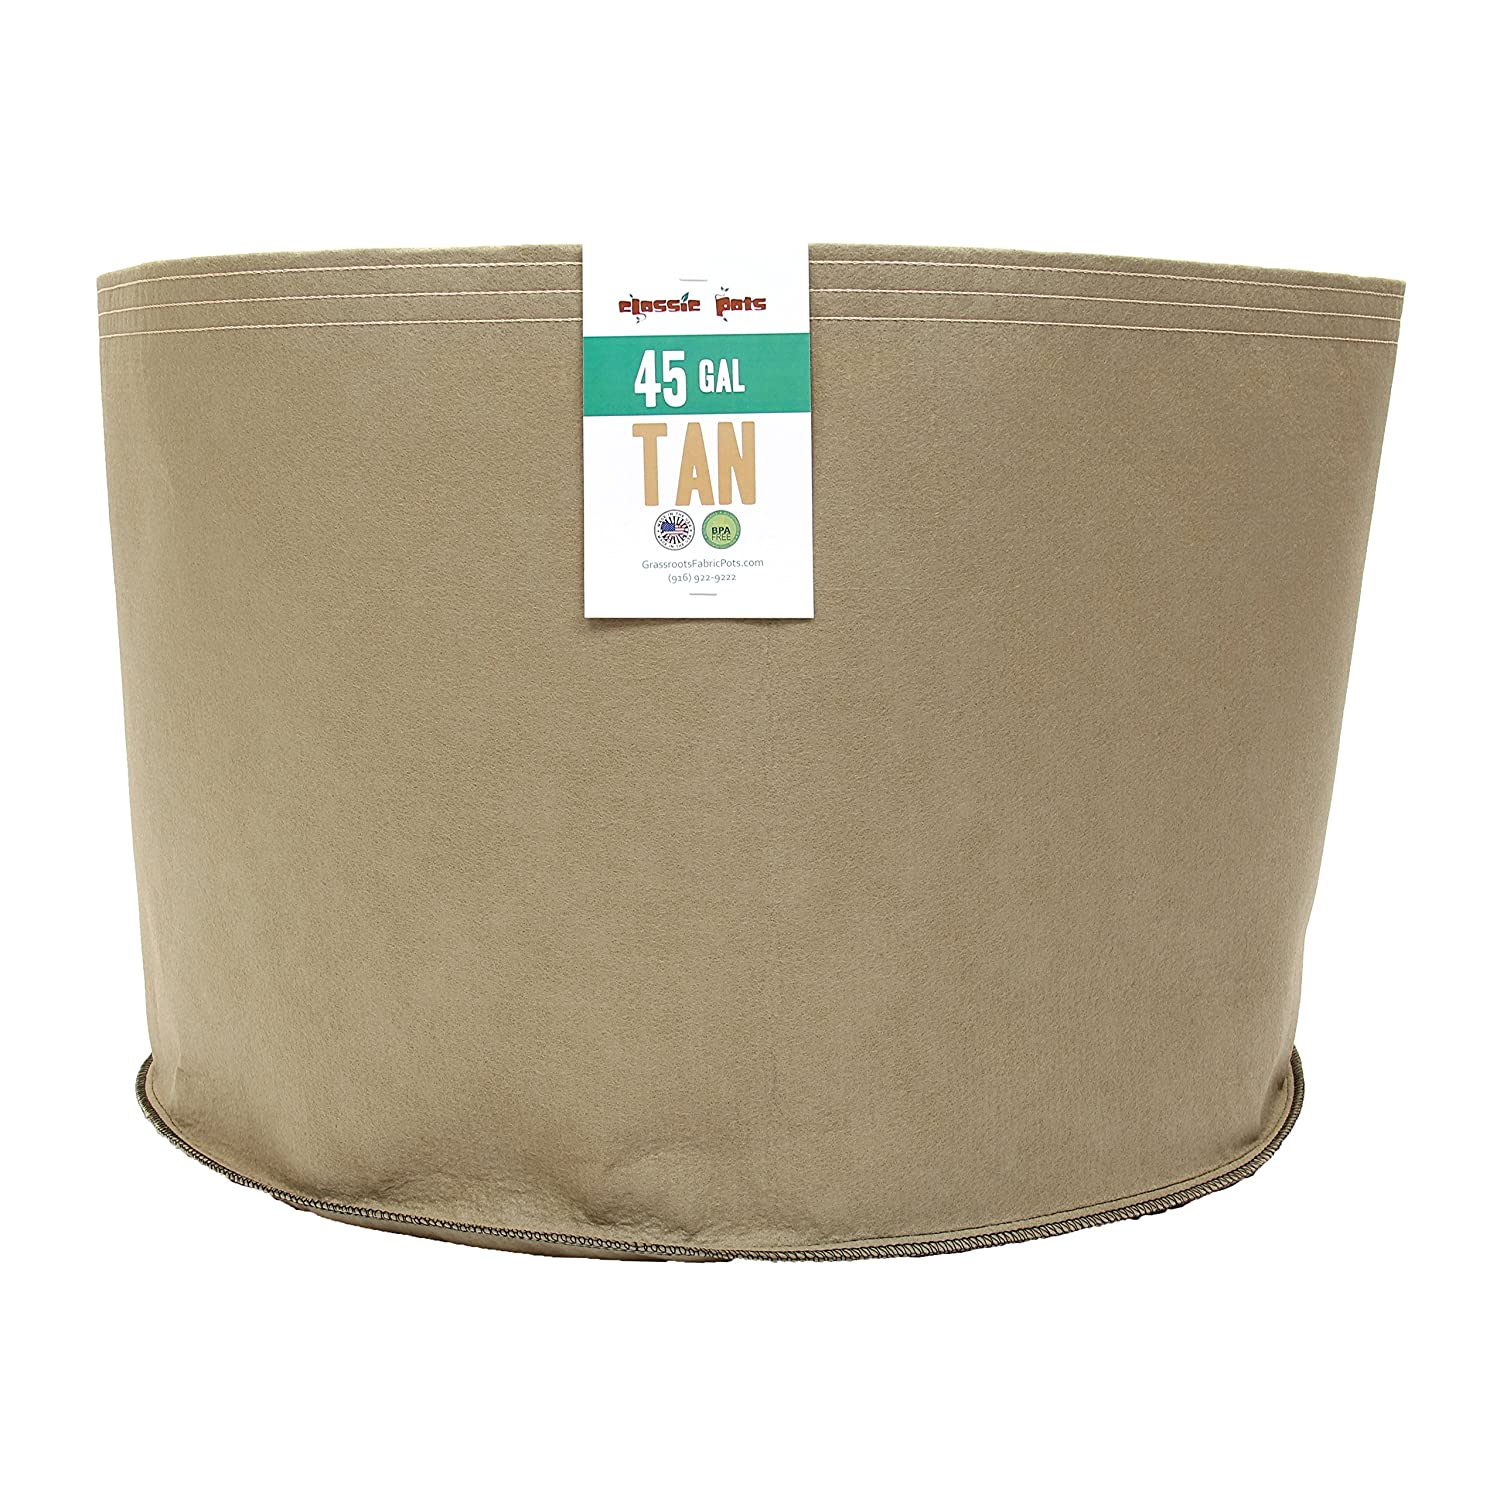 (20 Pack) 45 Gallon Tan Grassroots Fabric Pot - Grow Pot and Aeration Container